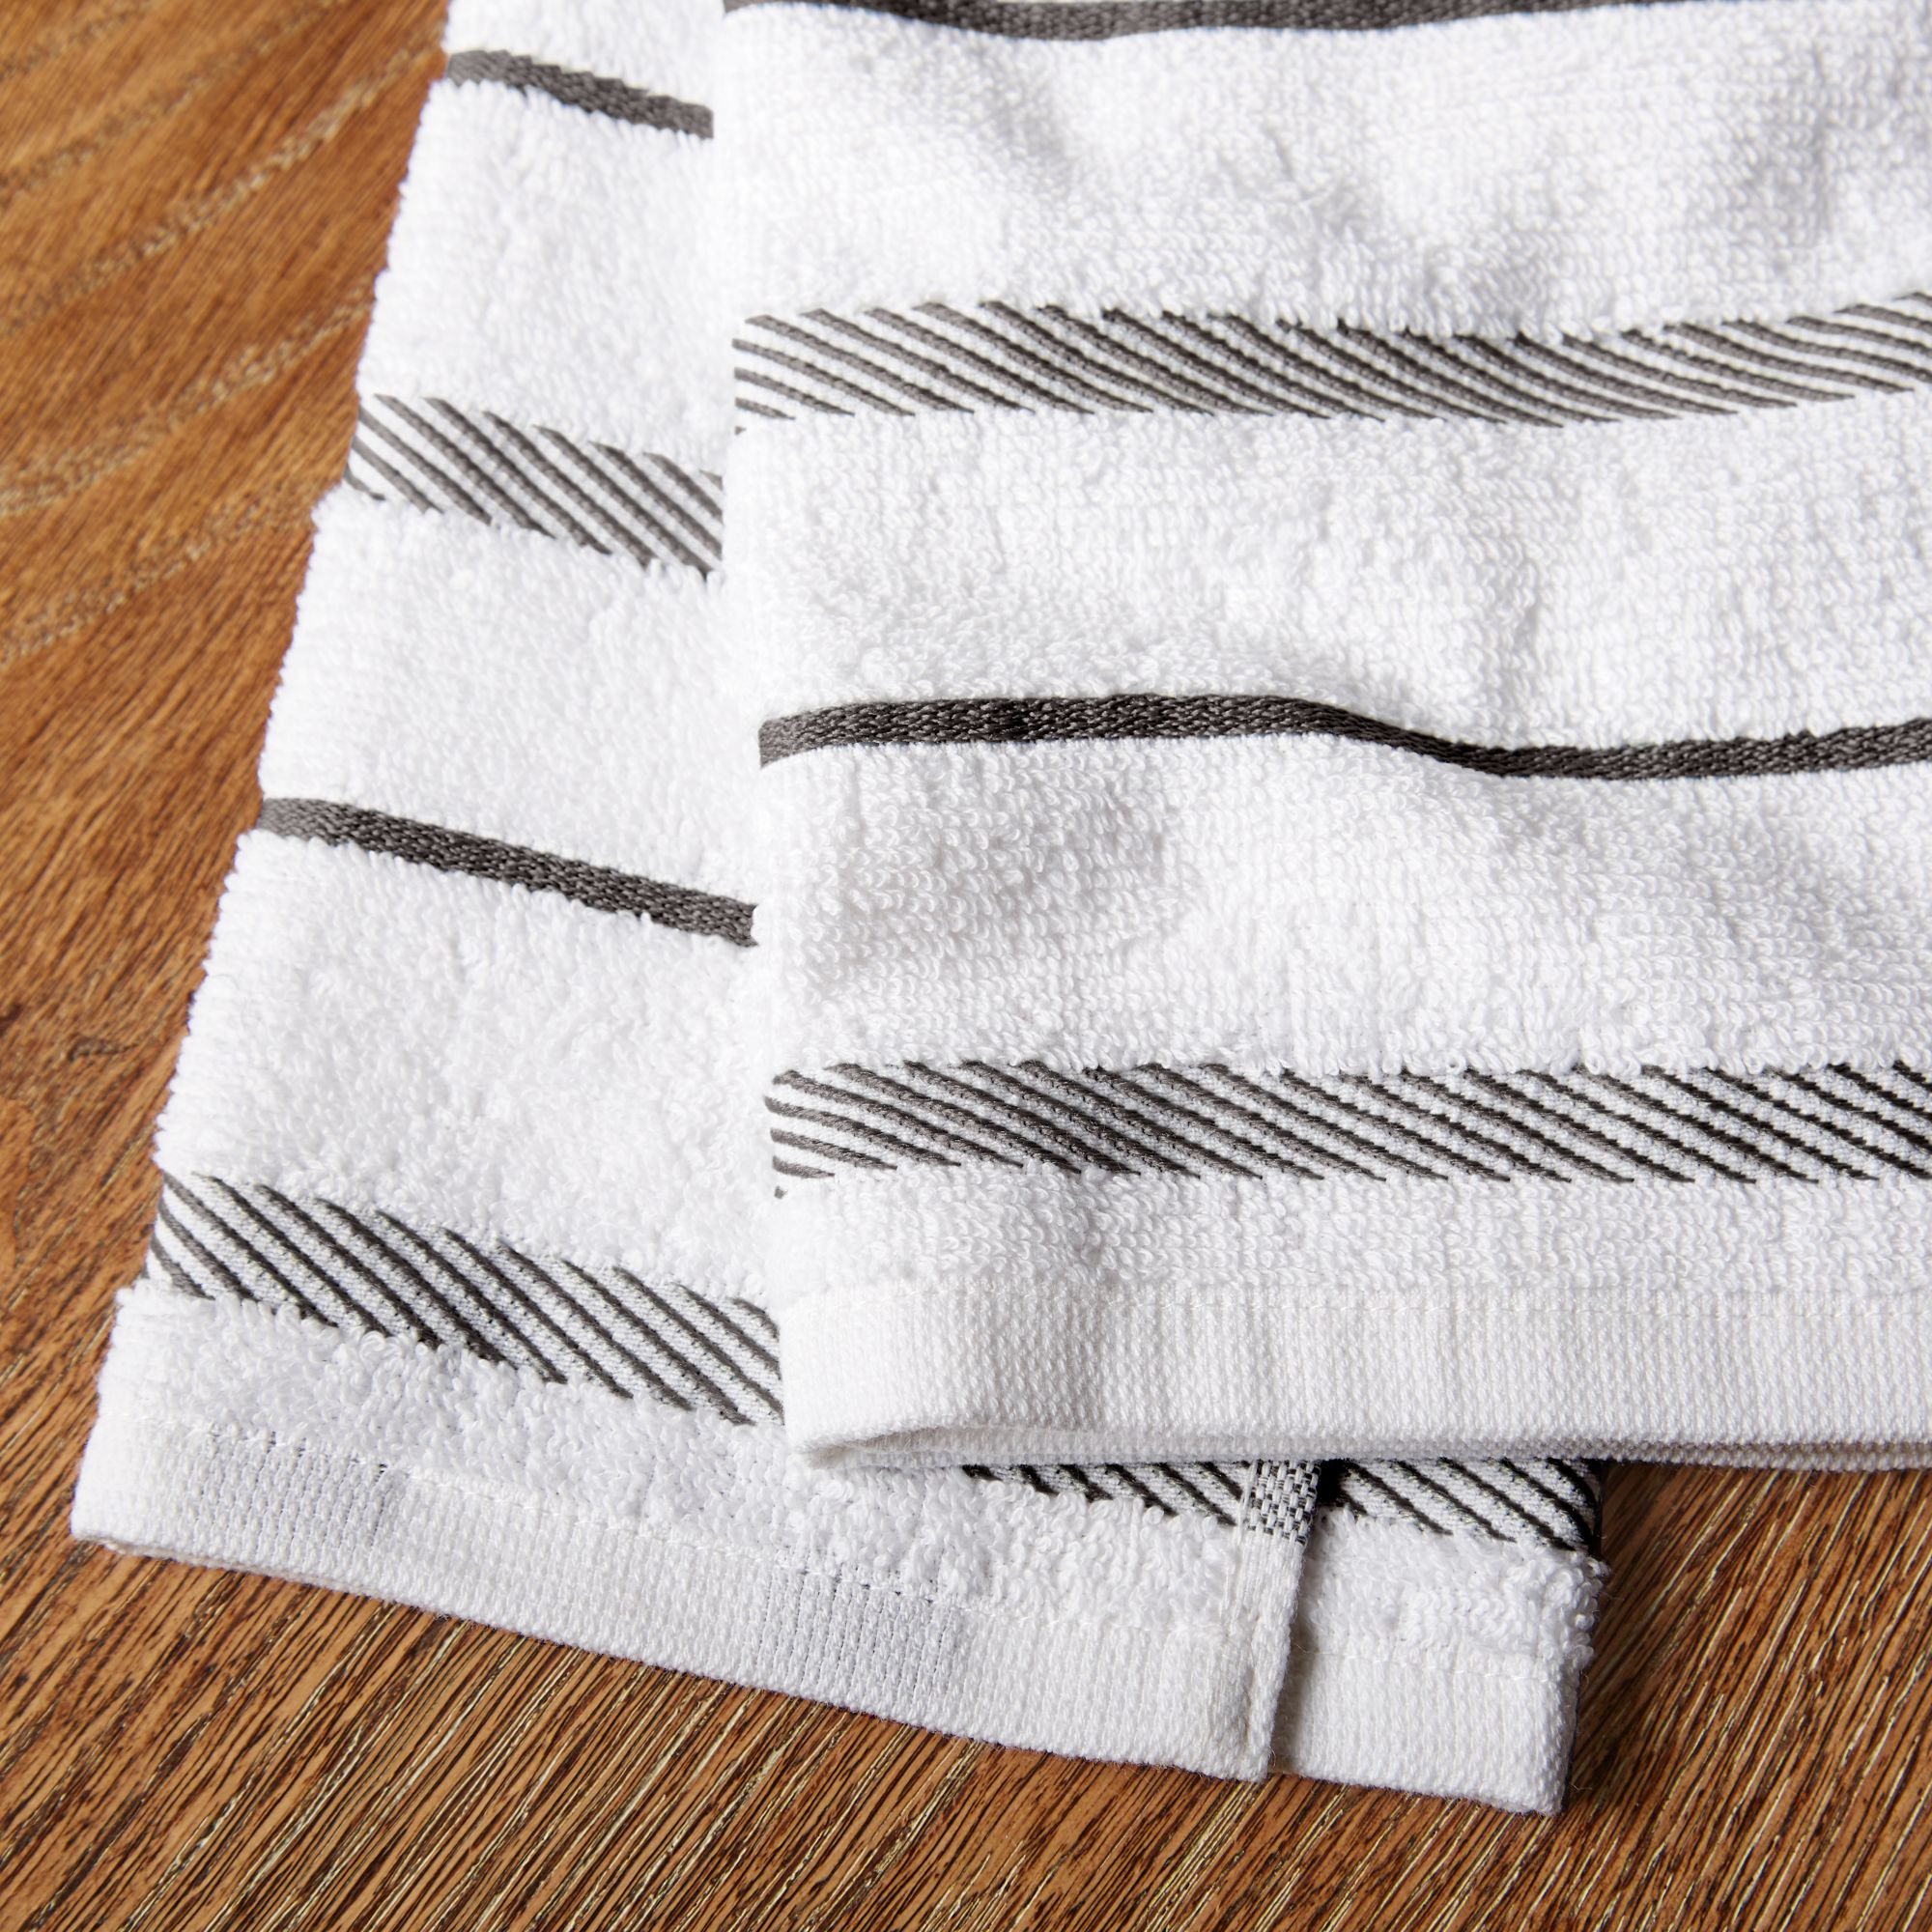 New KitchenAid Set of Two Navy Blue and White Stripped Plush Kitchen Towels